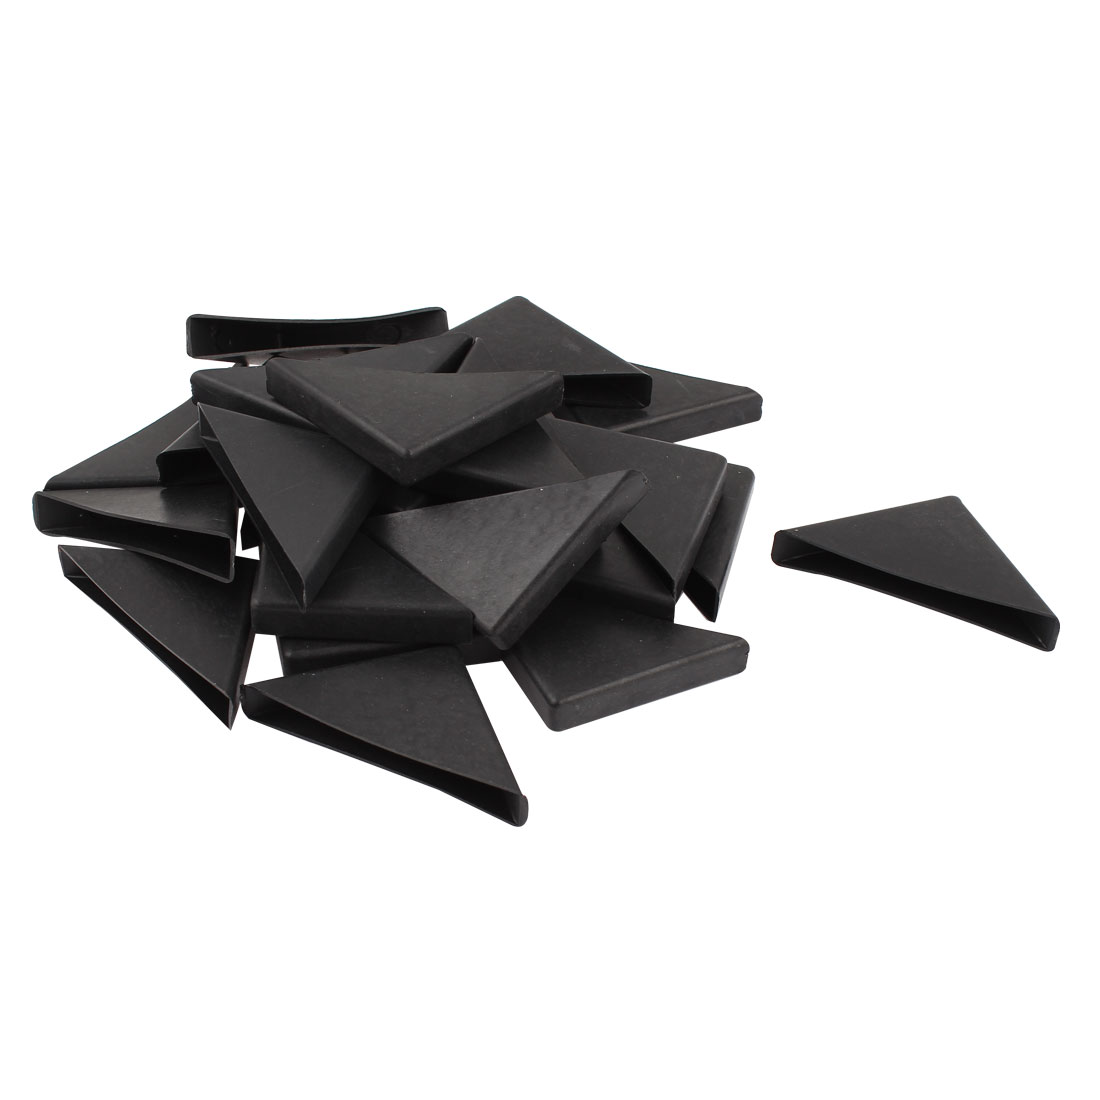 x autohaux 24 pcs triangle shape furniture glass table corner cushion protector 10mm x 75mm